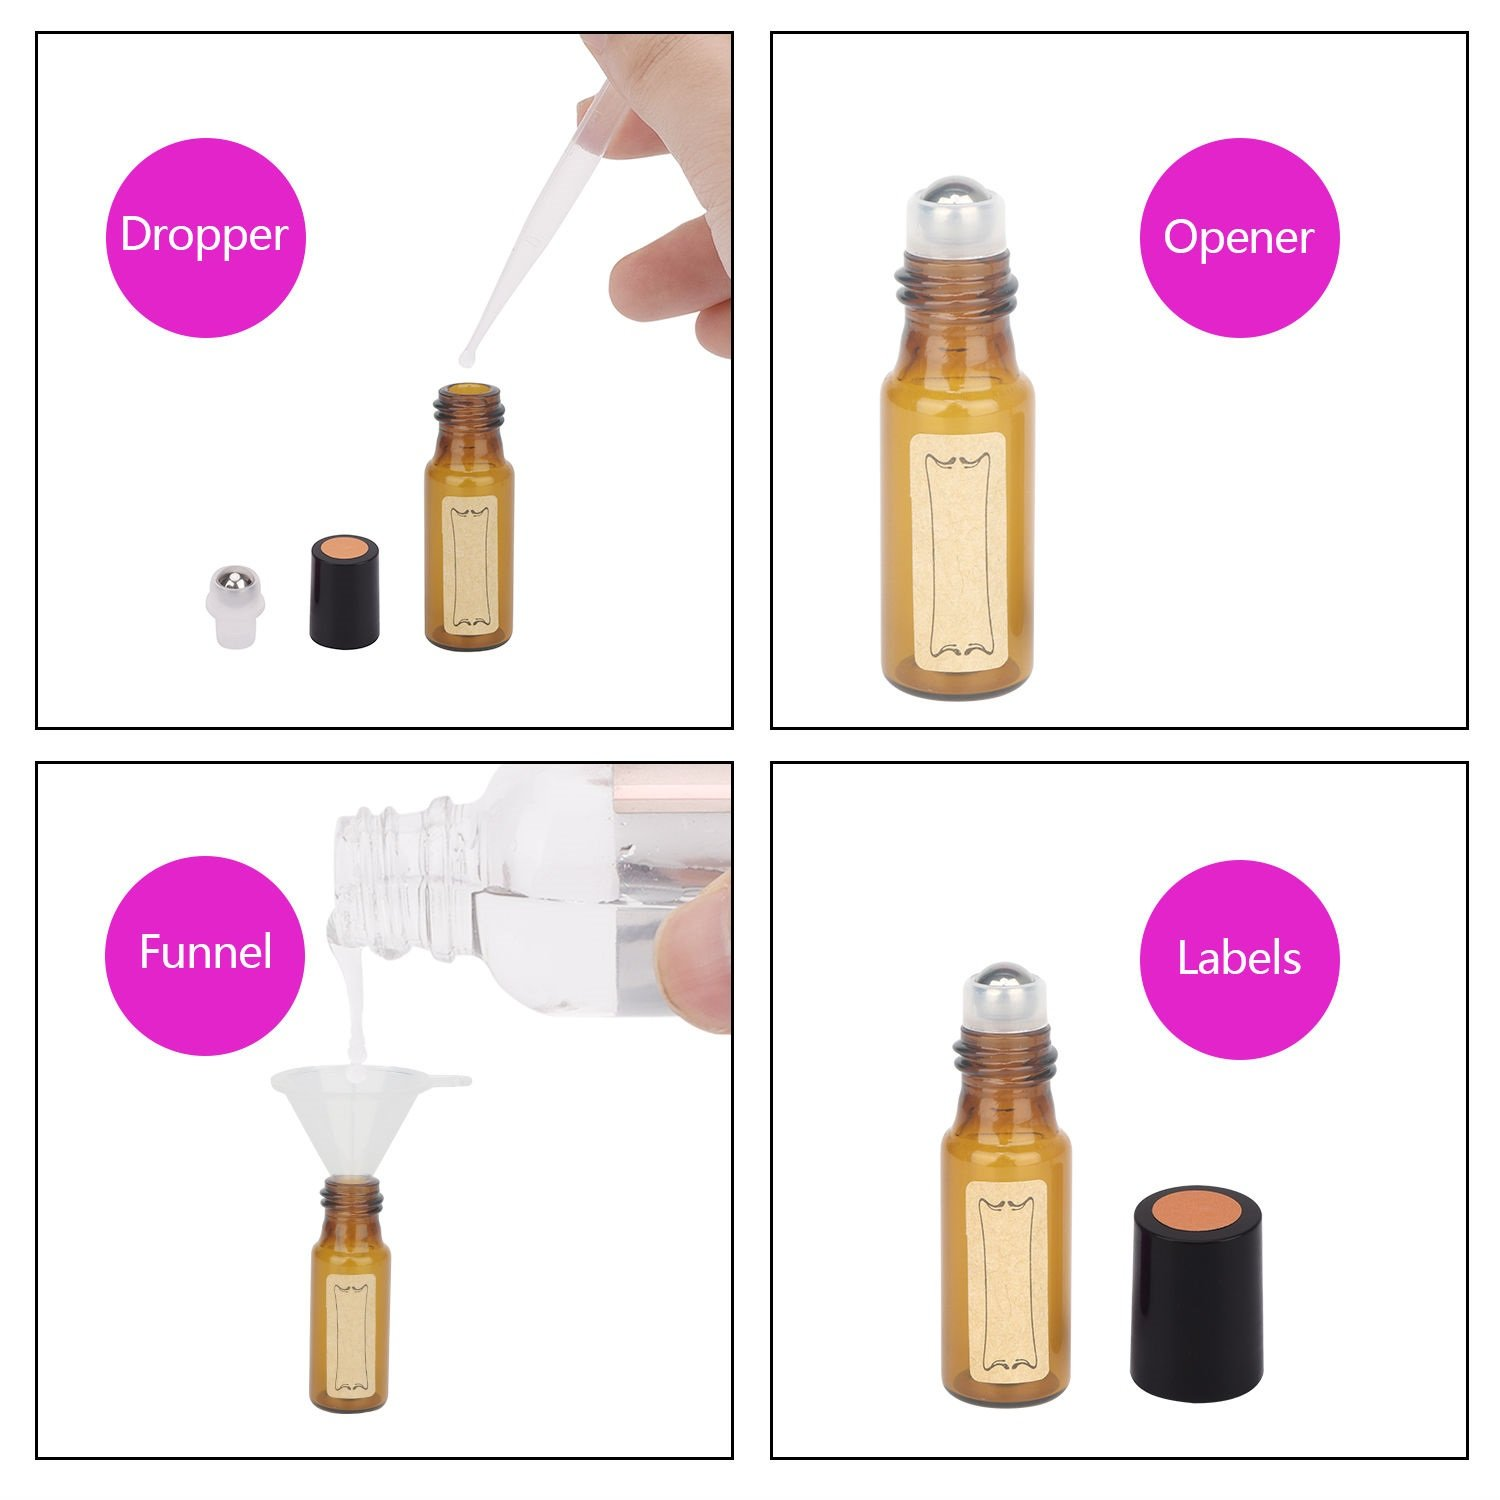 Essential Oil Roller Bottles, 24 Pack Amber Glass Roller Bottles 5ml, Roller Balls for Essential Oils, Roll on Bottles by Easytle (96 Pieces Labels, 4 Funnels, 4 Dropper, 2 Opener) by Easytle (Image #6)